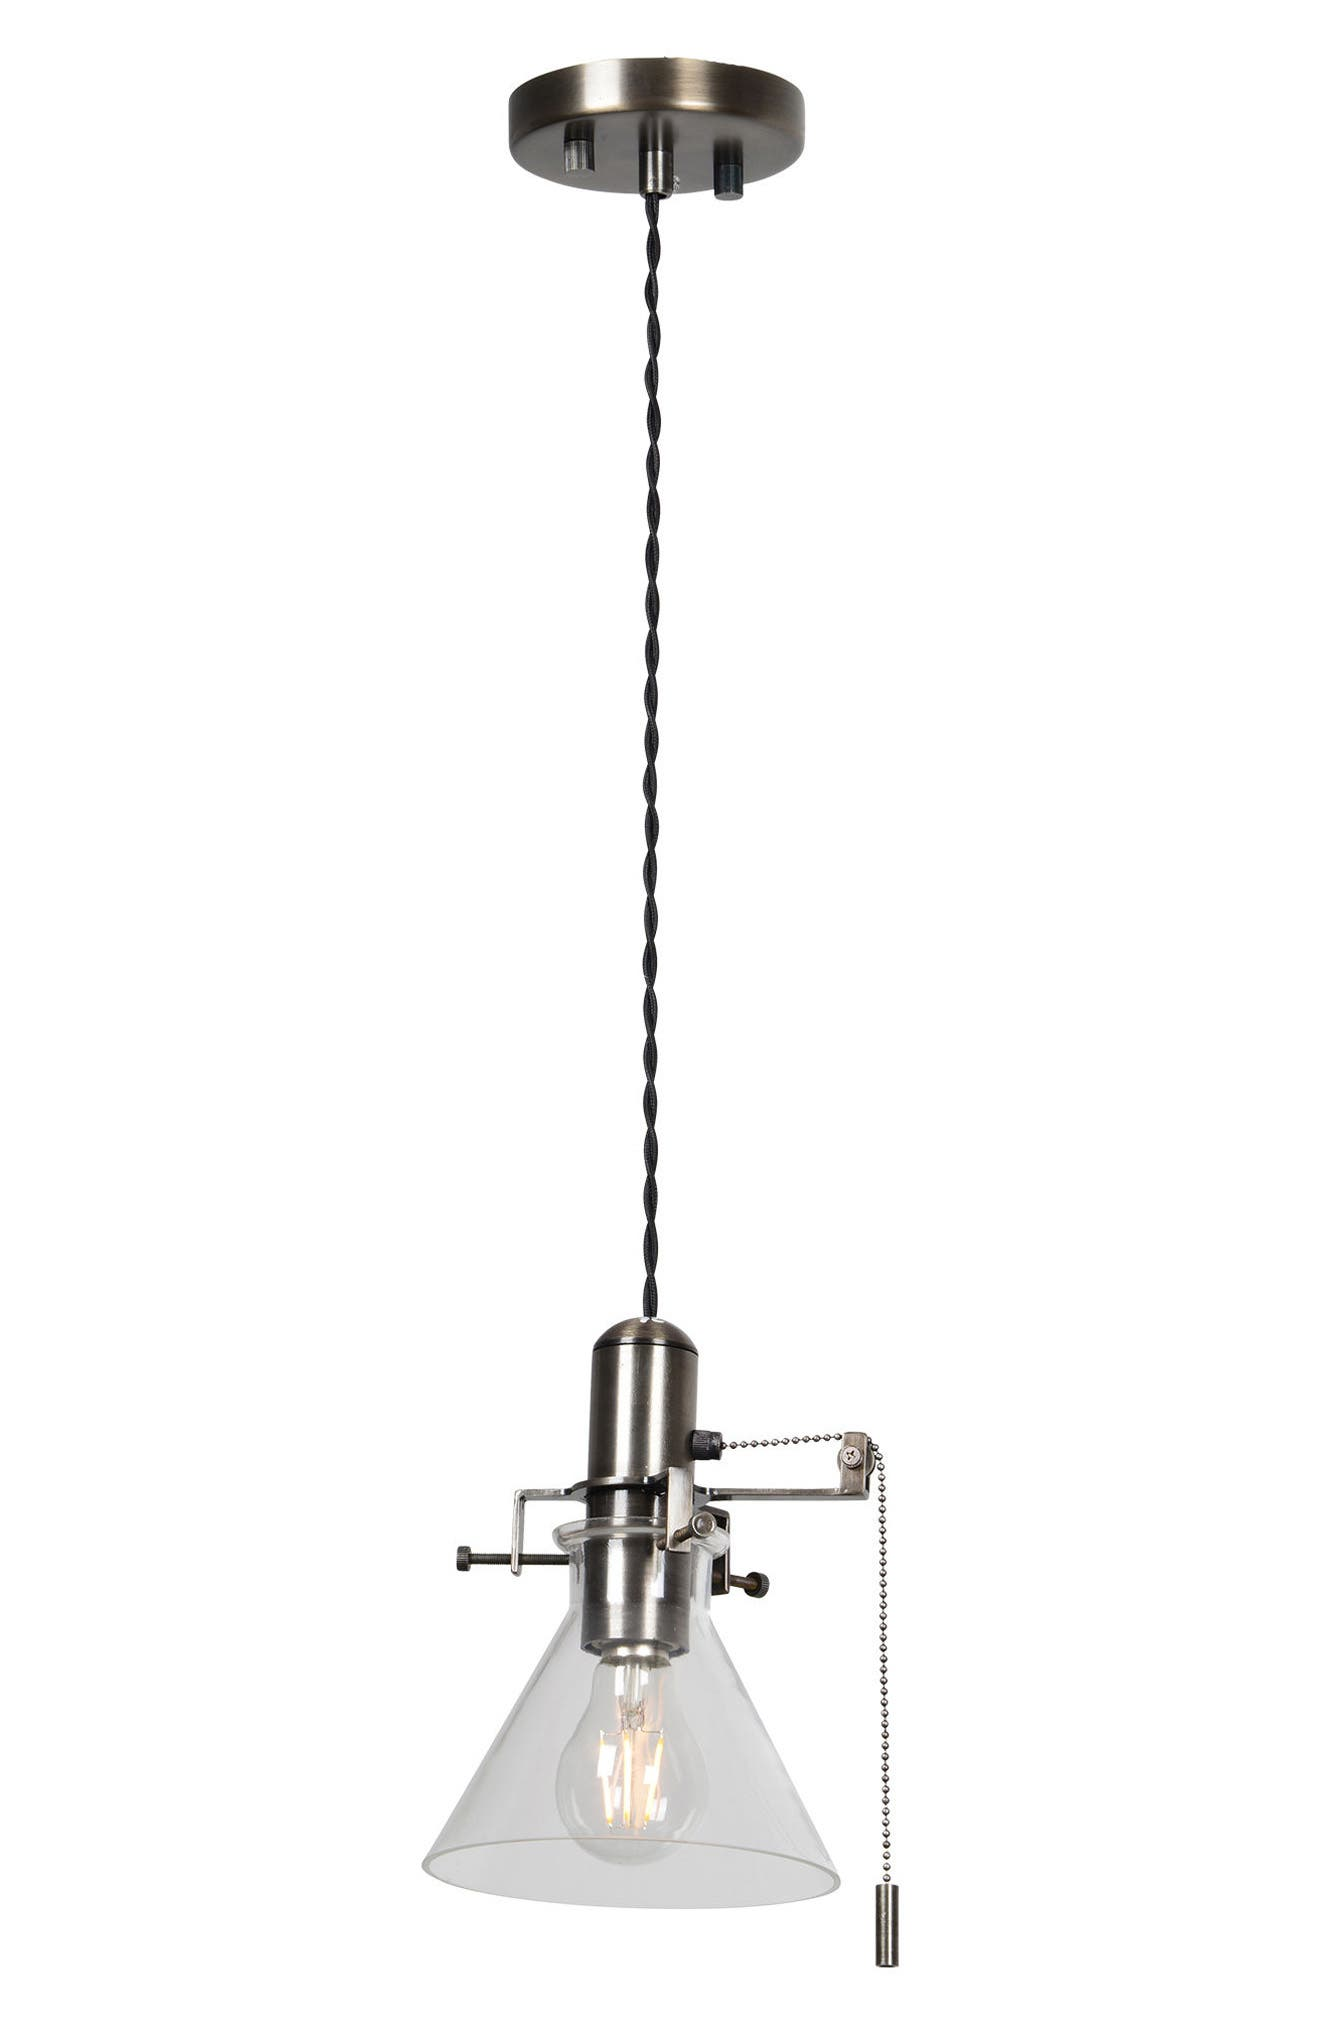 Pozzo Ceiling Light Fixture,                         Main,                         color, 040